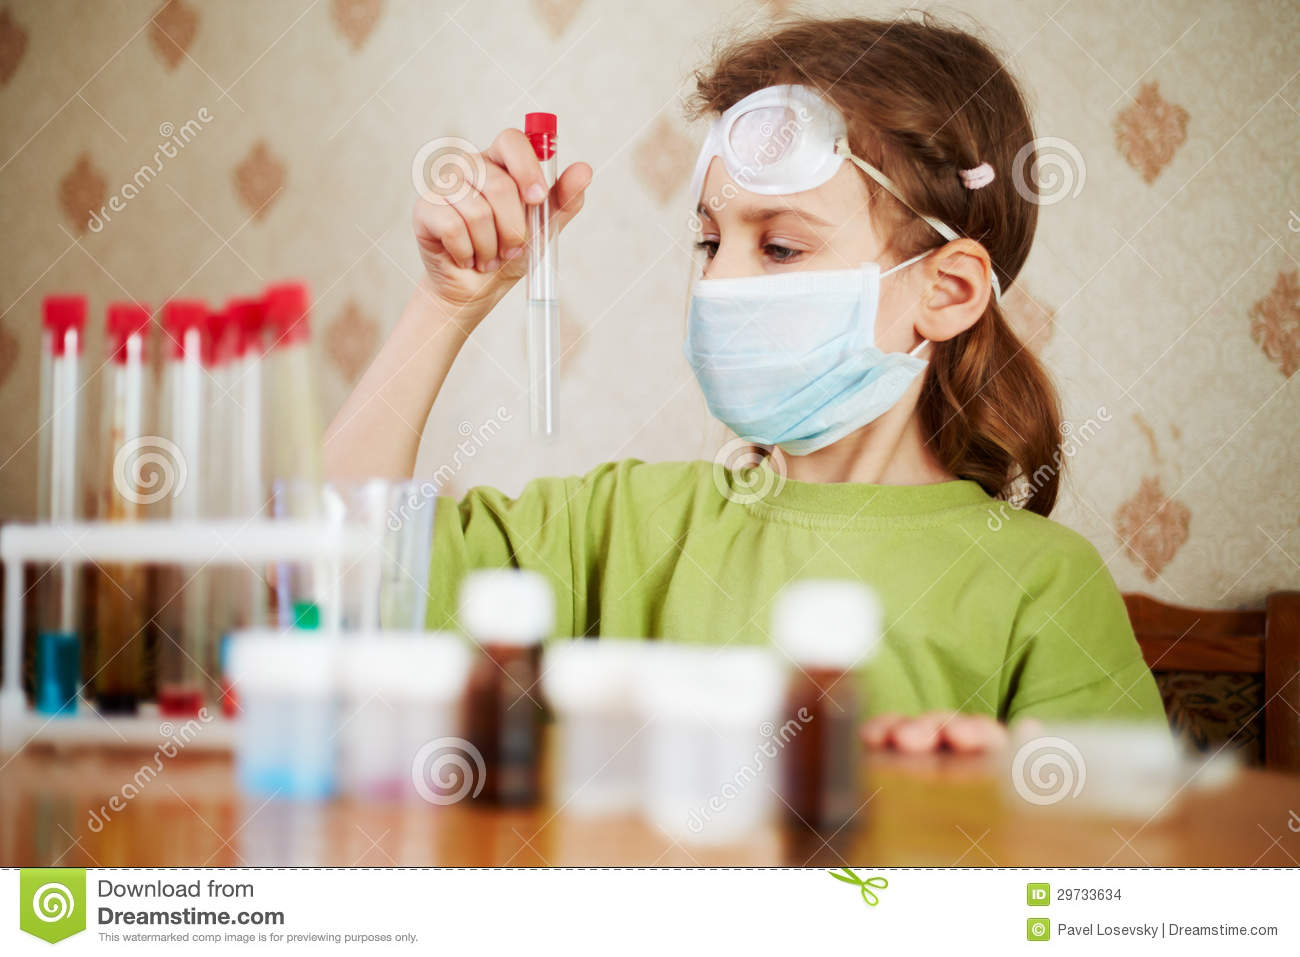 Girl in respirator attentively looks at test tube